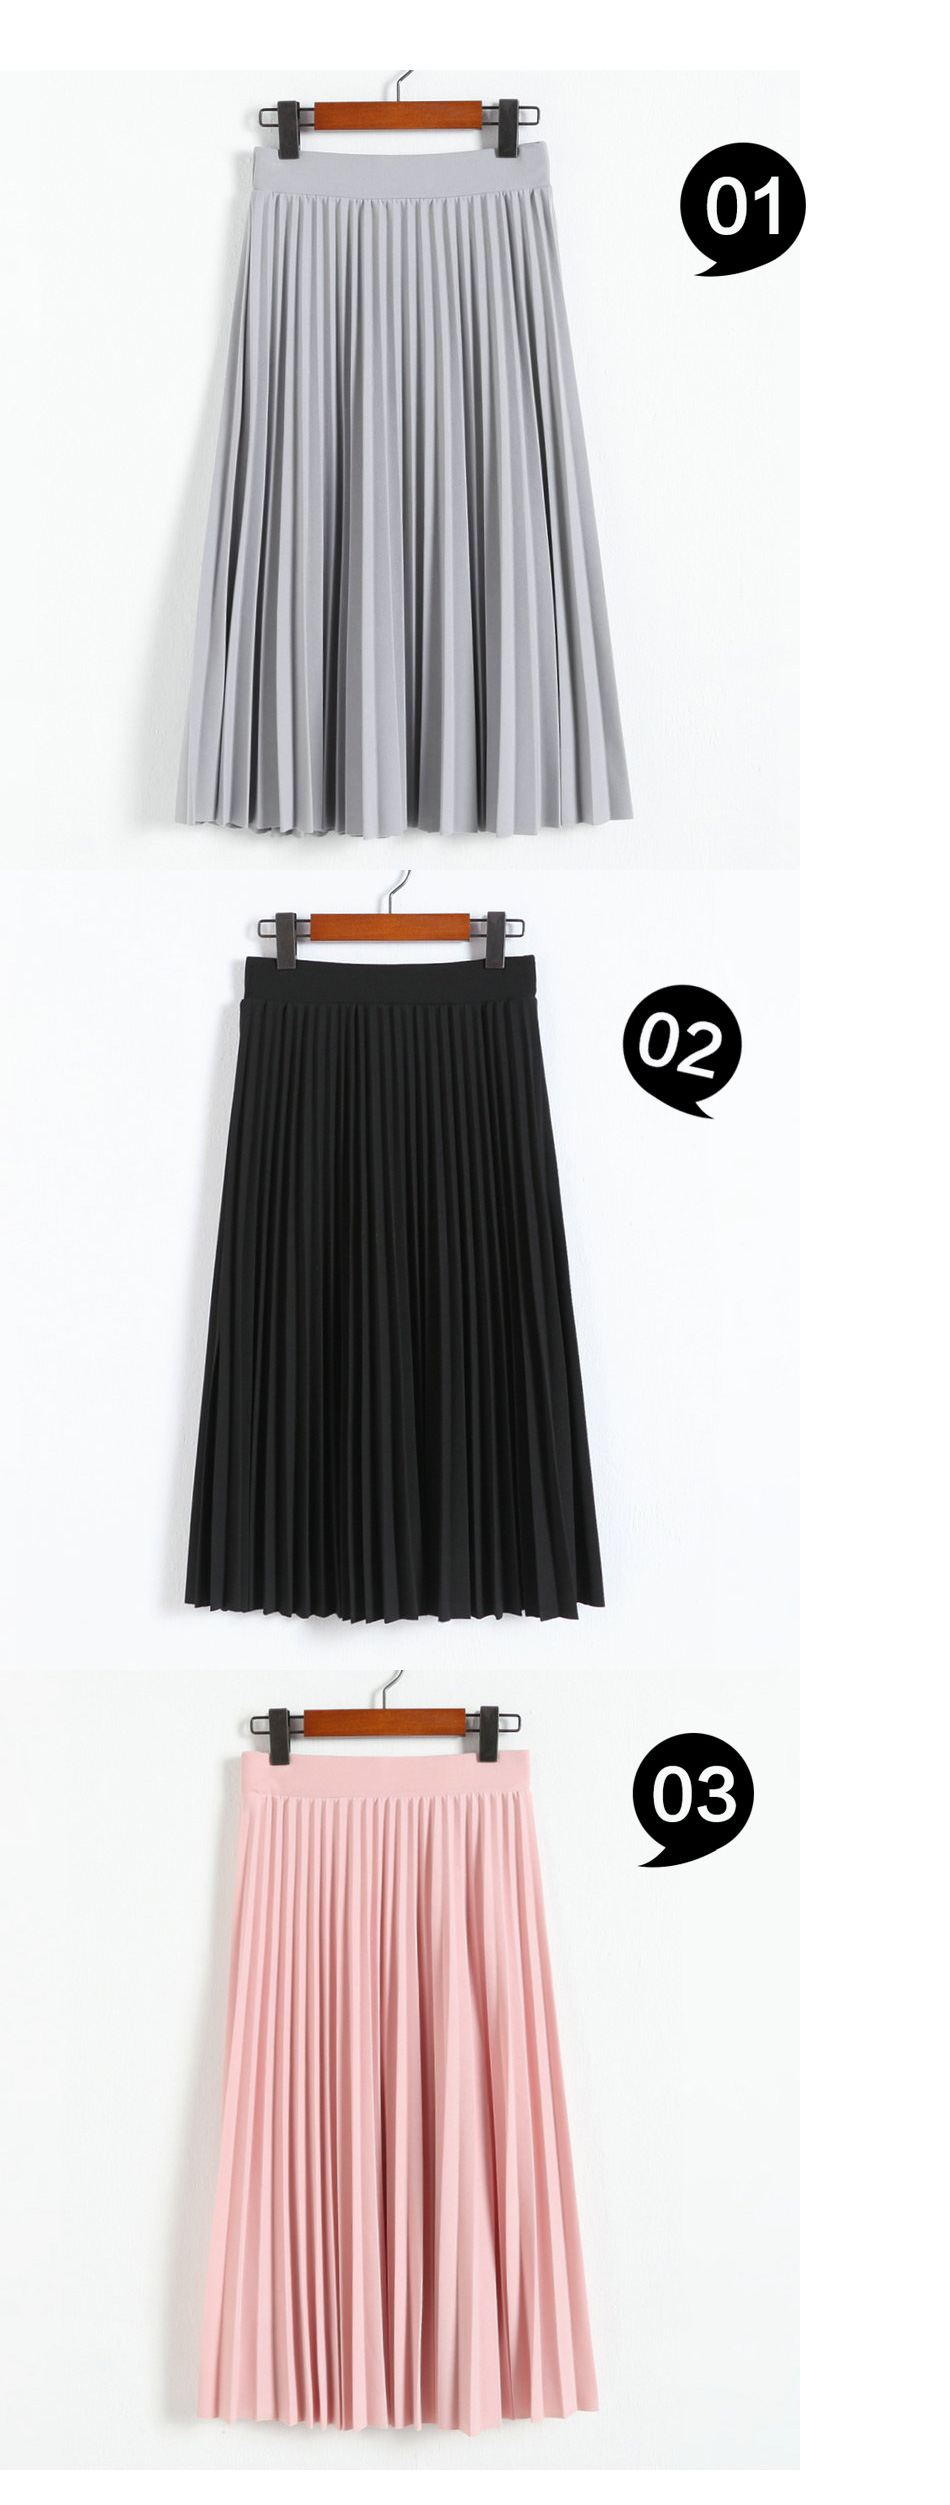 Aonibeier Fashion Women's High Waist Pleated Solid Color Length Elastic Skirt Promotions Lady Black Pink Party Casual Skirts 45